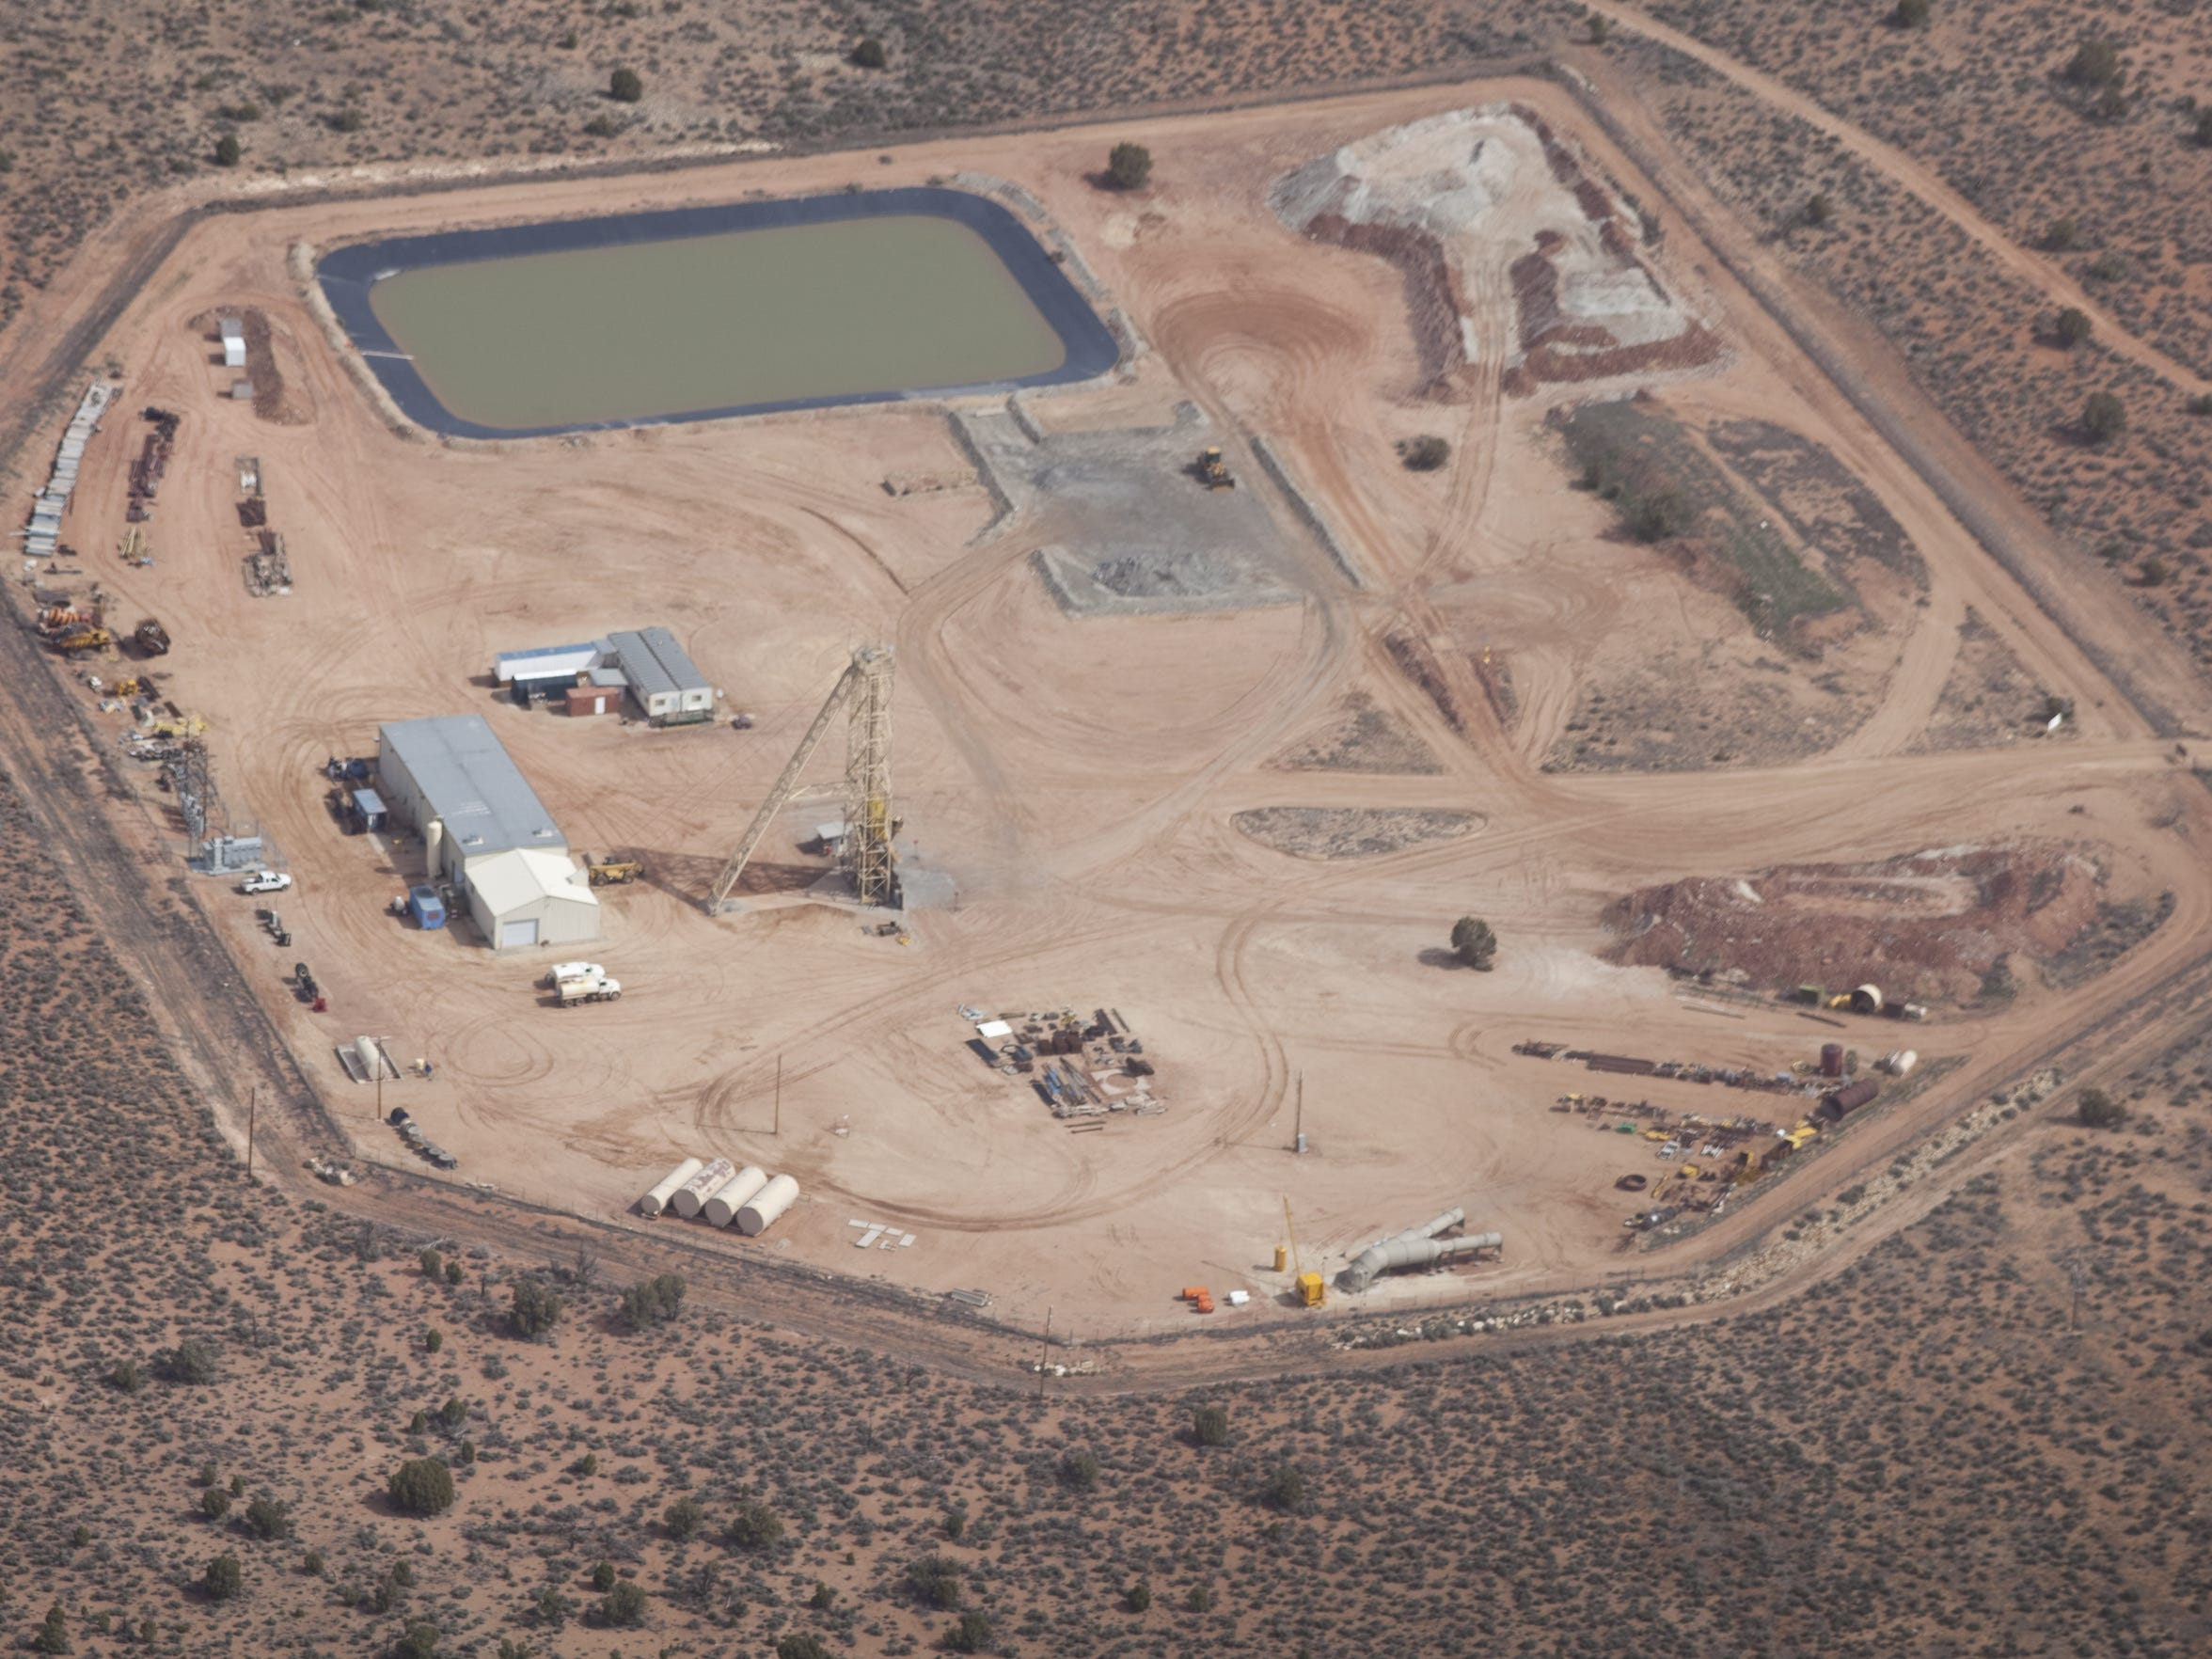 The Arizona #1 Mine is located north of the Grand Canyon